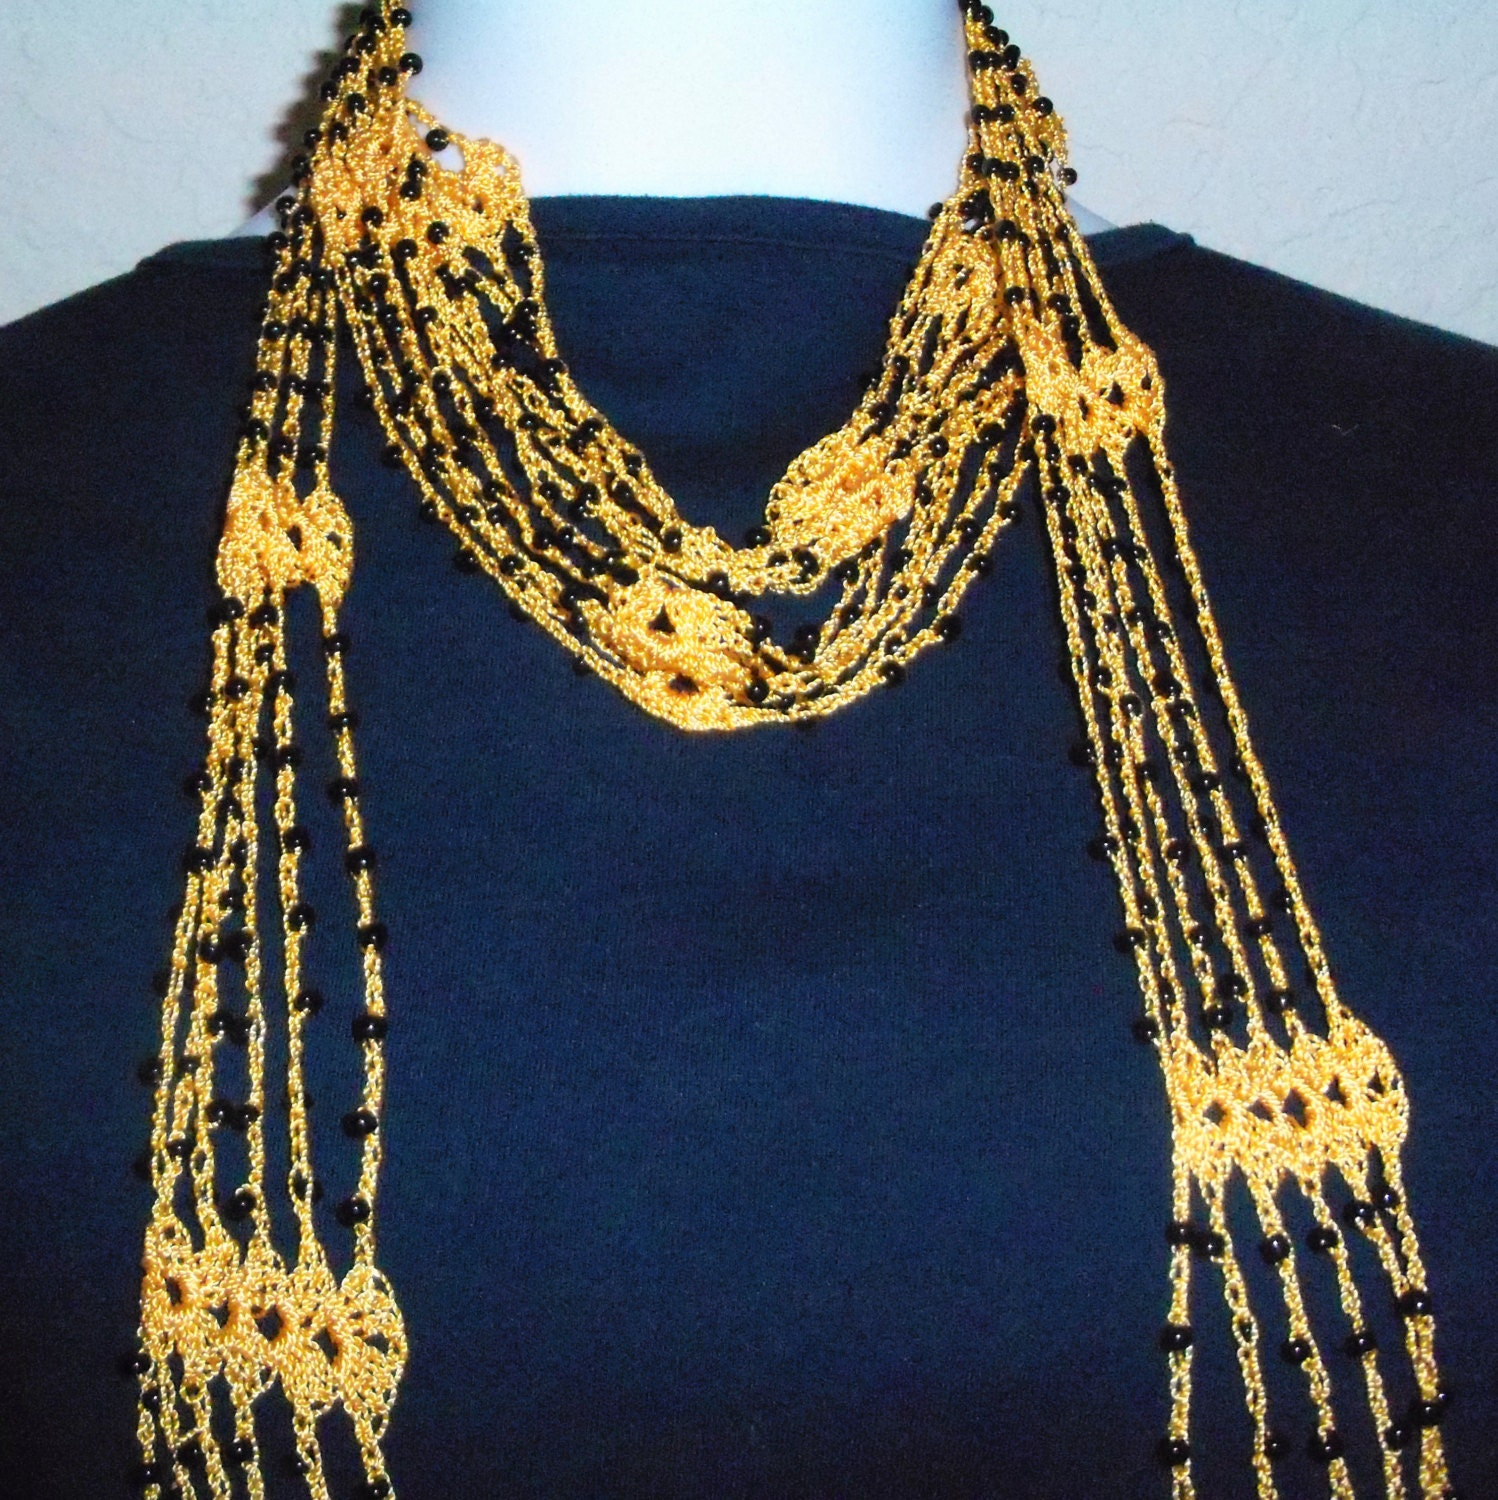 Free Crochet Scarf Patterns With Beads : CROCHET SKINNY SCARF NECKLACE ? Only New Crochet Patterns